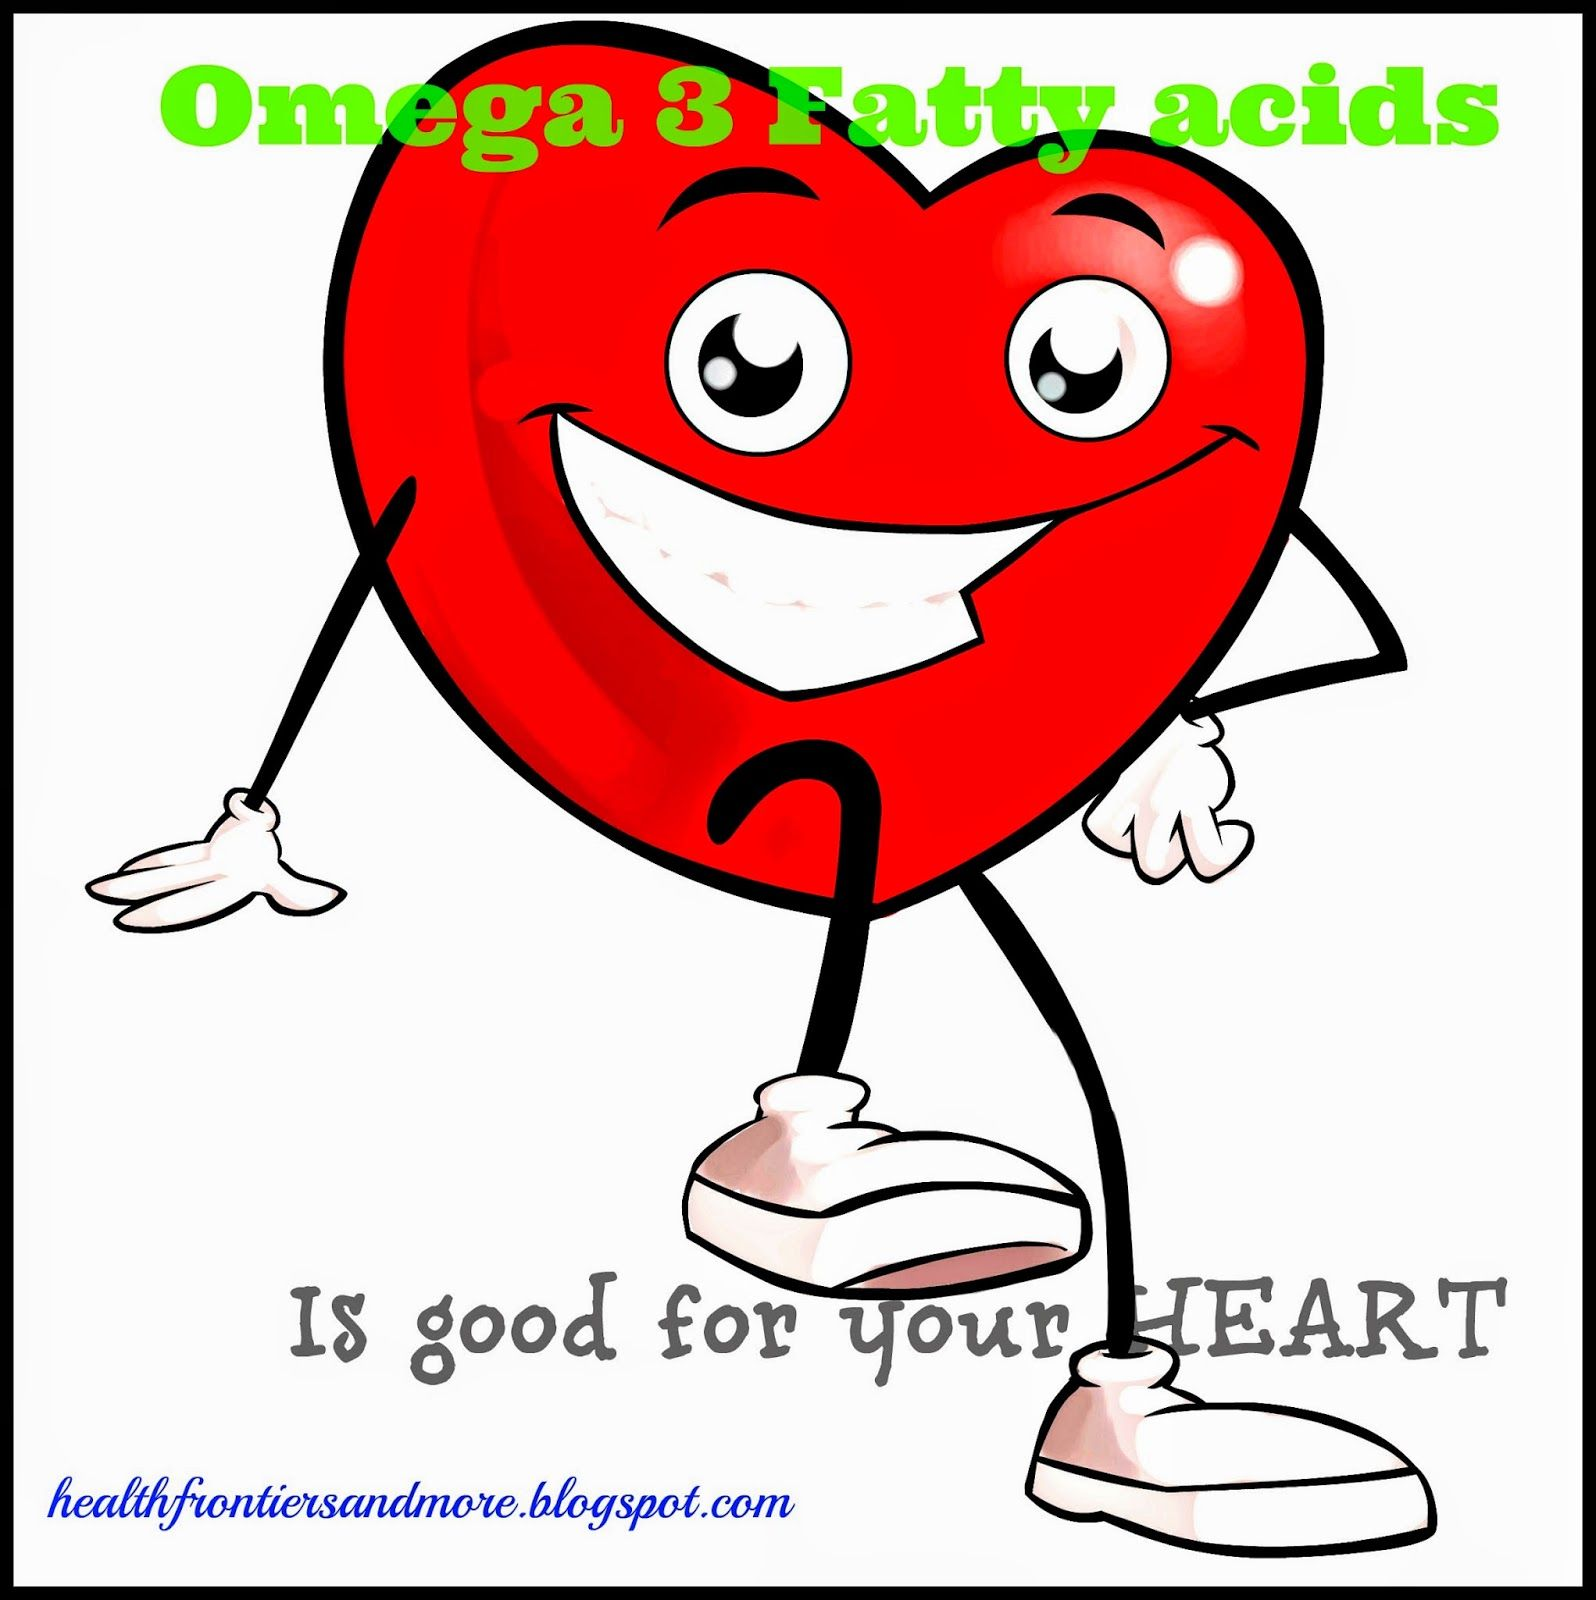 Adding Omega 3 fatty acids to your diet is a good idea, especially since EPA (eicosapentaenoic acid) and DHA (docohexaenoic acid) may be beneficial for your heart, circulation, blood pressure, immune function, and brain development.Experts say that adults should consume a minimum of 400 milligrams o